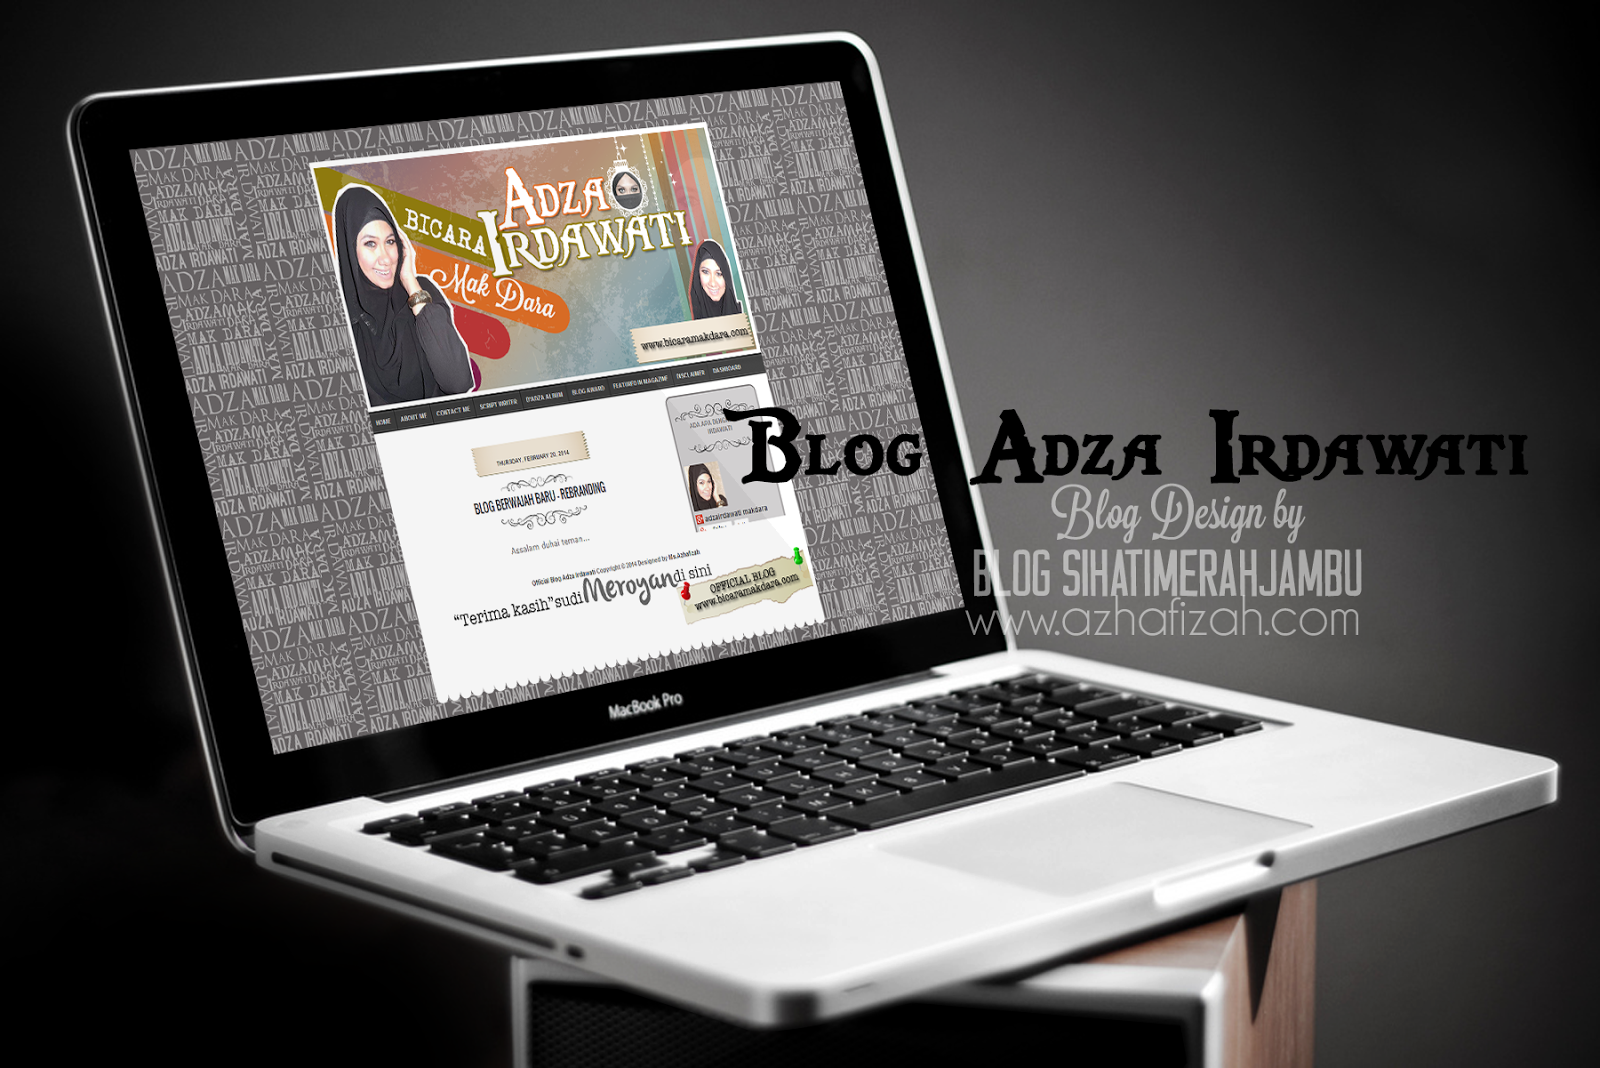 Artwork Design Full Template Blog Adza Irdawati a k a Mak Dara